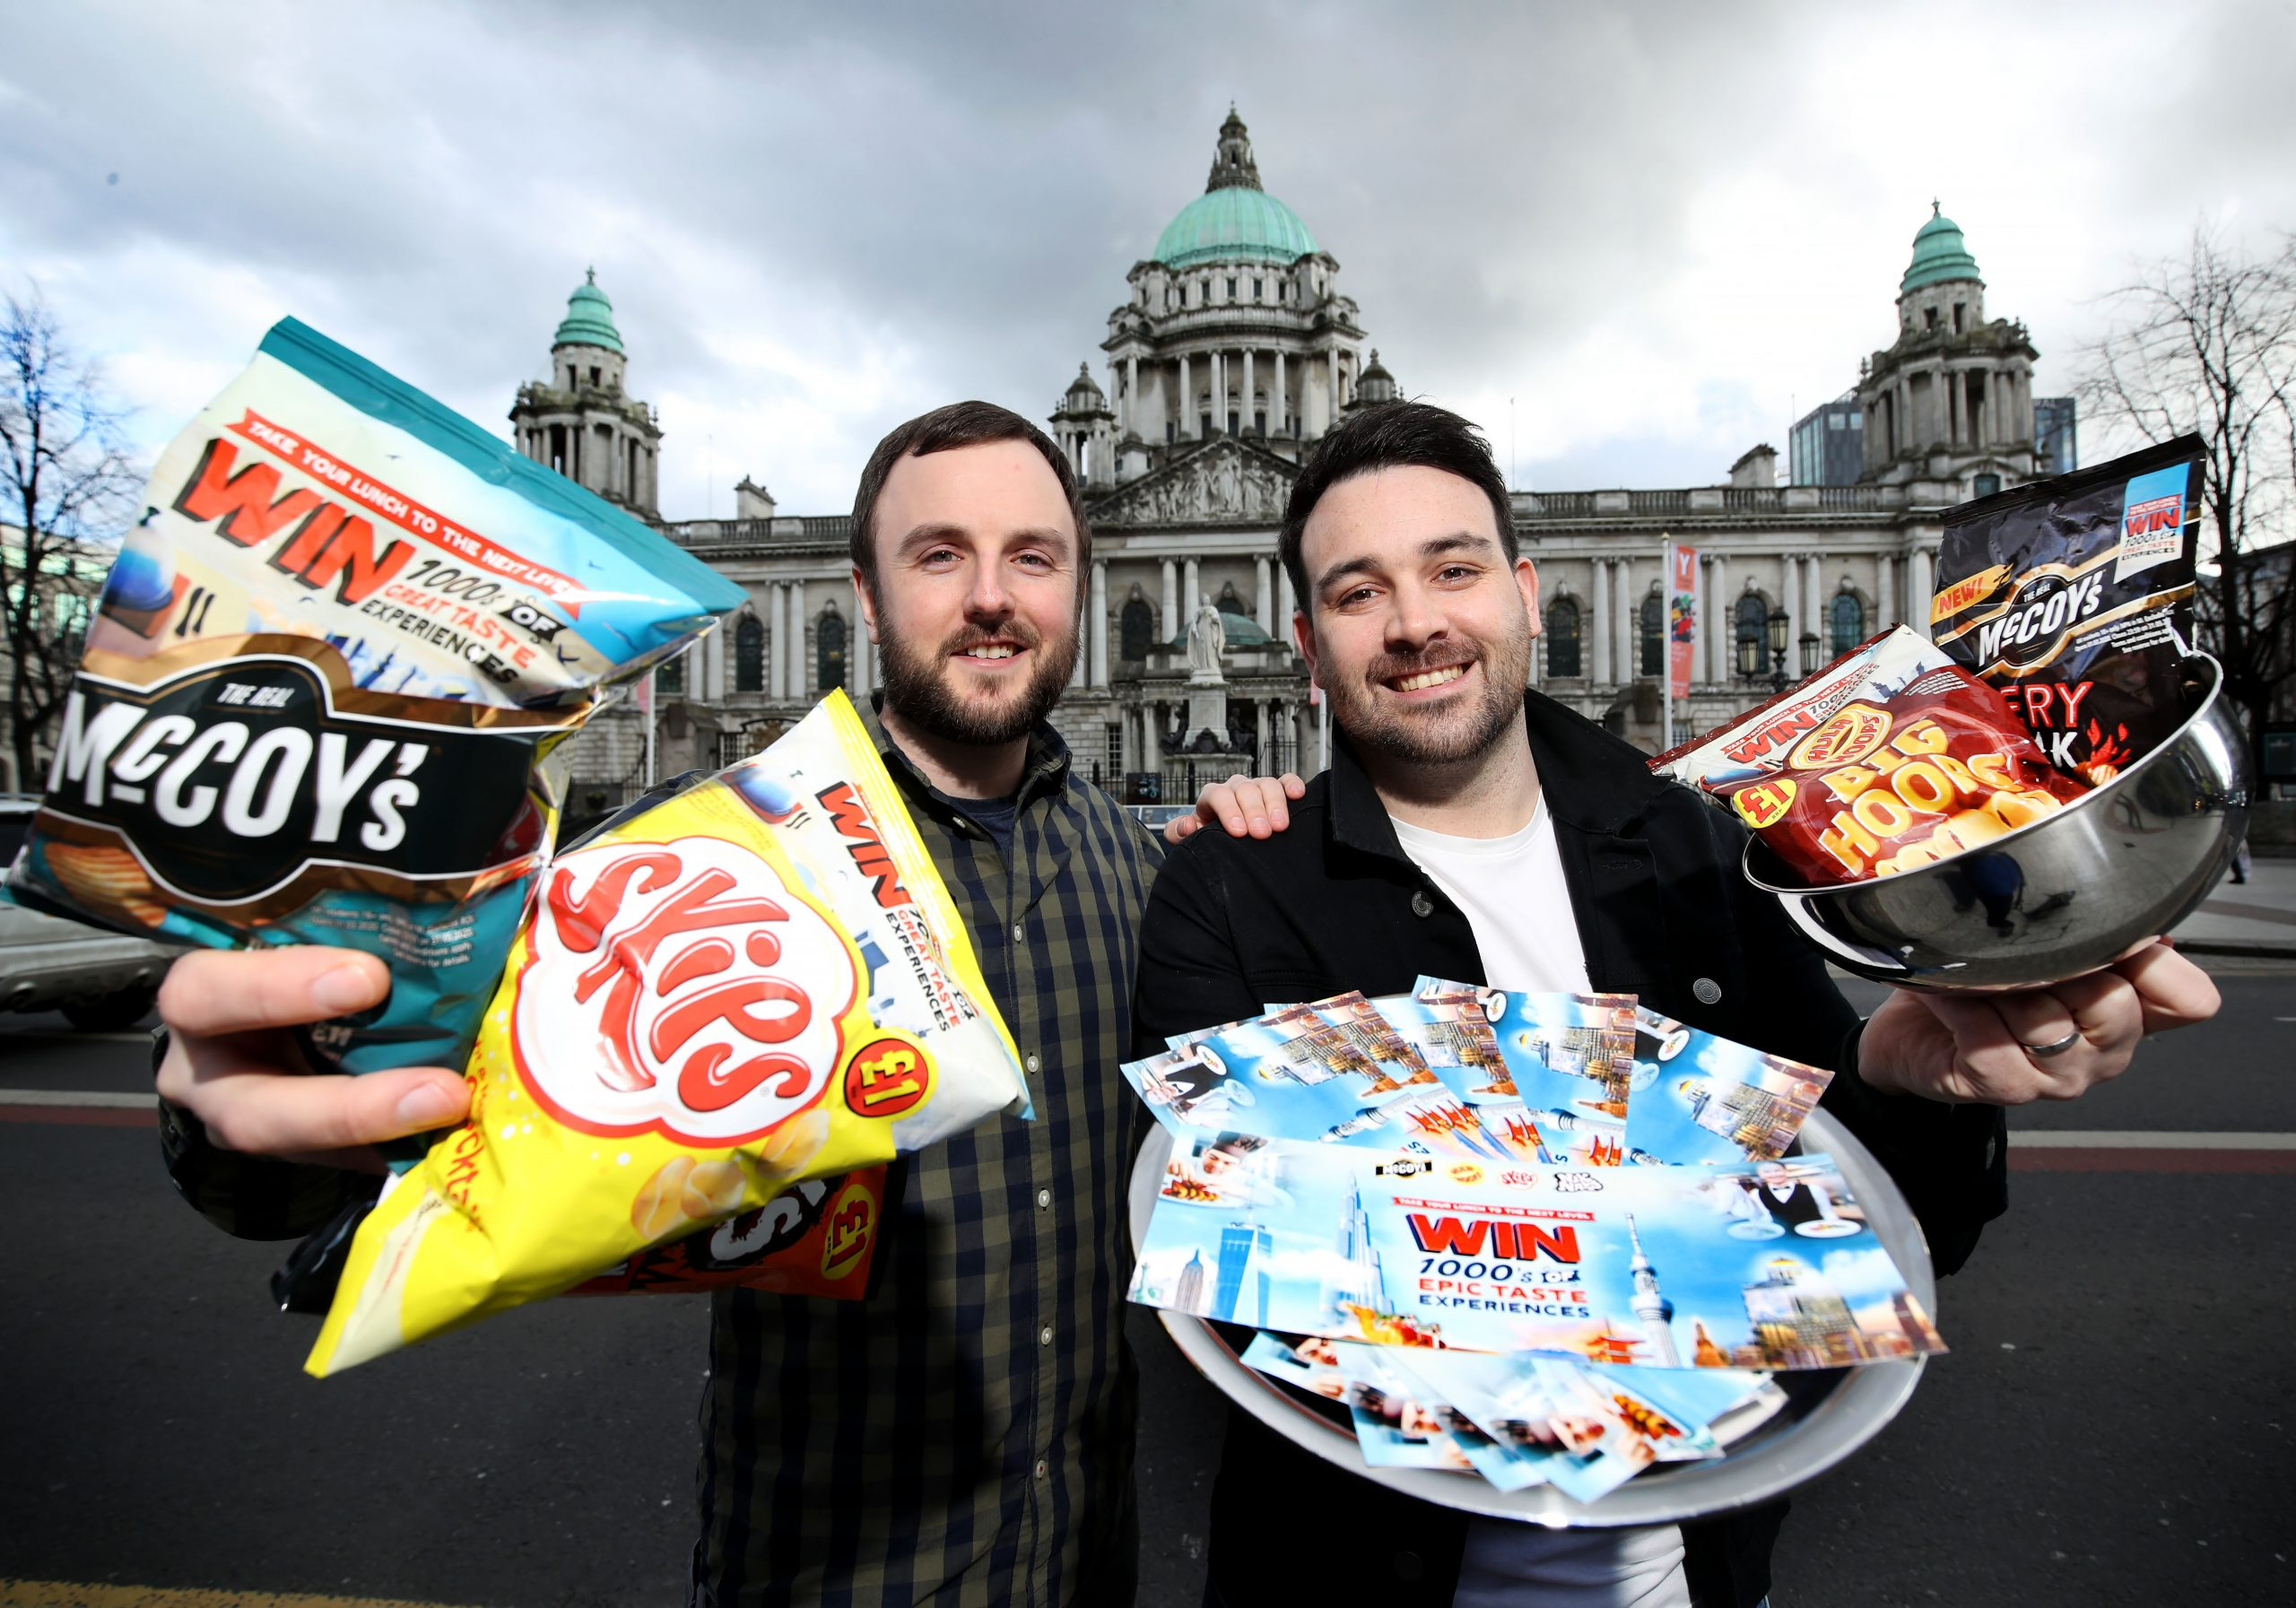 Take your lunch to the next level with KP Snacks: John Baxter of KP Snacks (NI) and The Belfast Food Blogger Conor Hogan have launched a tasty campaign that gives you the chance to win from a menu of prizes including amazing 5-night trips to Dubai, Tokyo, Bangkok or NYC to enjoy lunch in a skyscraper, plus £1000 in cash! There are also thousands of pounds worth of local restaurant vouchers being given away. This is part of KP Snacks' biggest ever campaign which offers Northern Ireland crisp lovers the chance of winning 1000's of great taste experiences when they pick up campaign branded bags of McCoy's, Skips, Nik Naks and Hula Hoops from now until the end of May. MEDIA ENQUIRIES: For further information, please contact Ciara Kinkead of Duffy Rafferty Communications on 028 9073 0880.